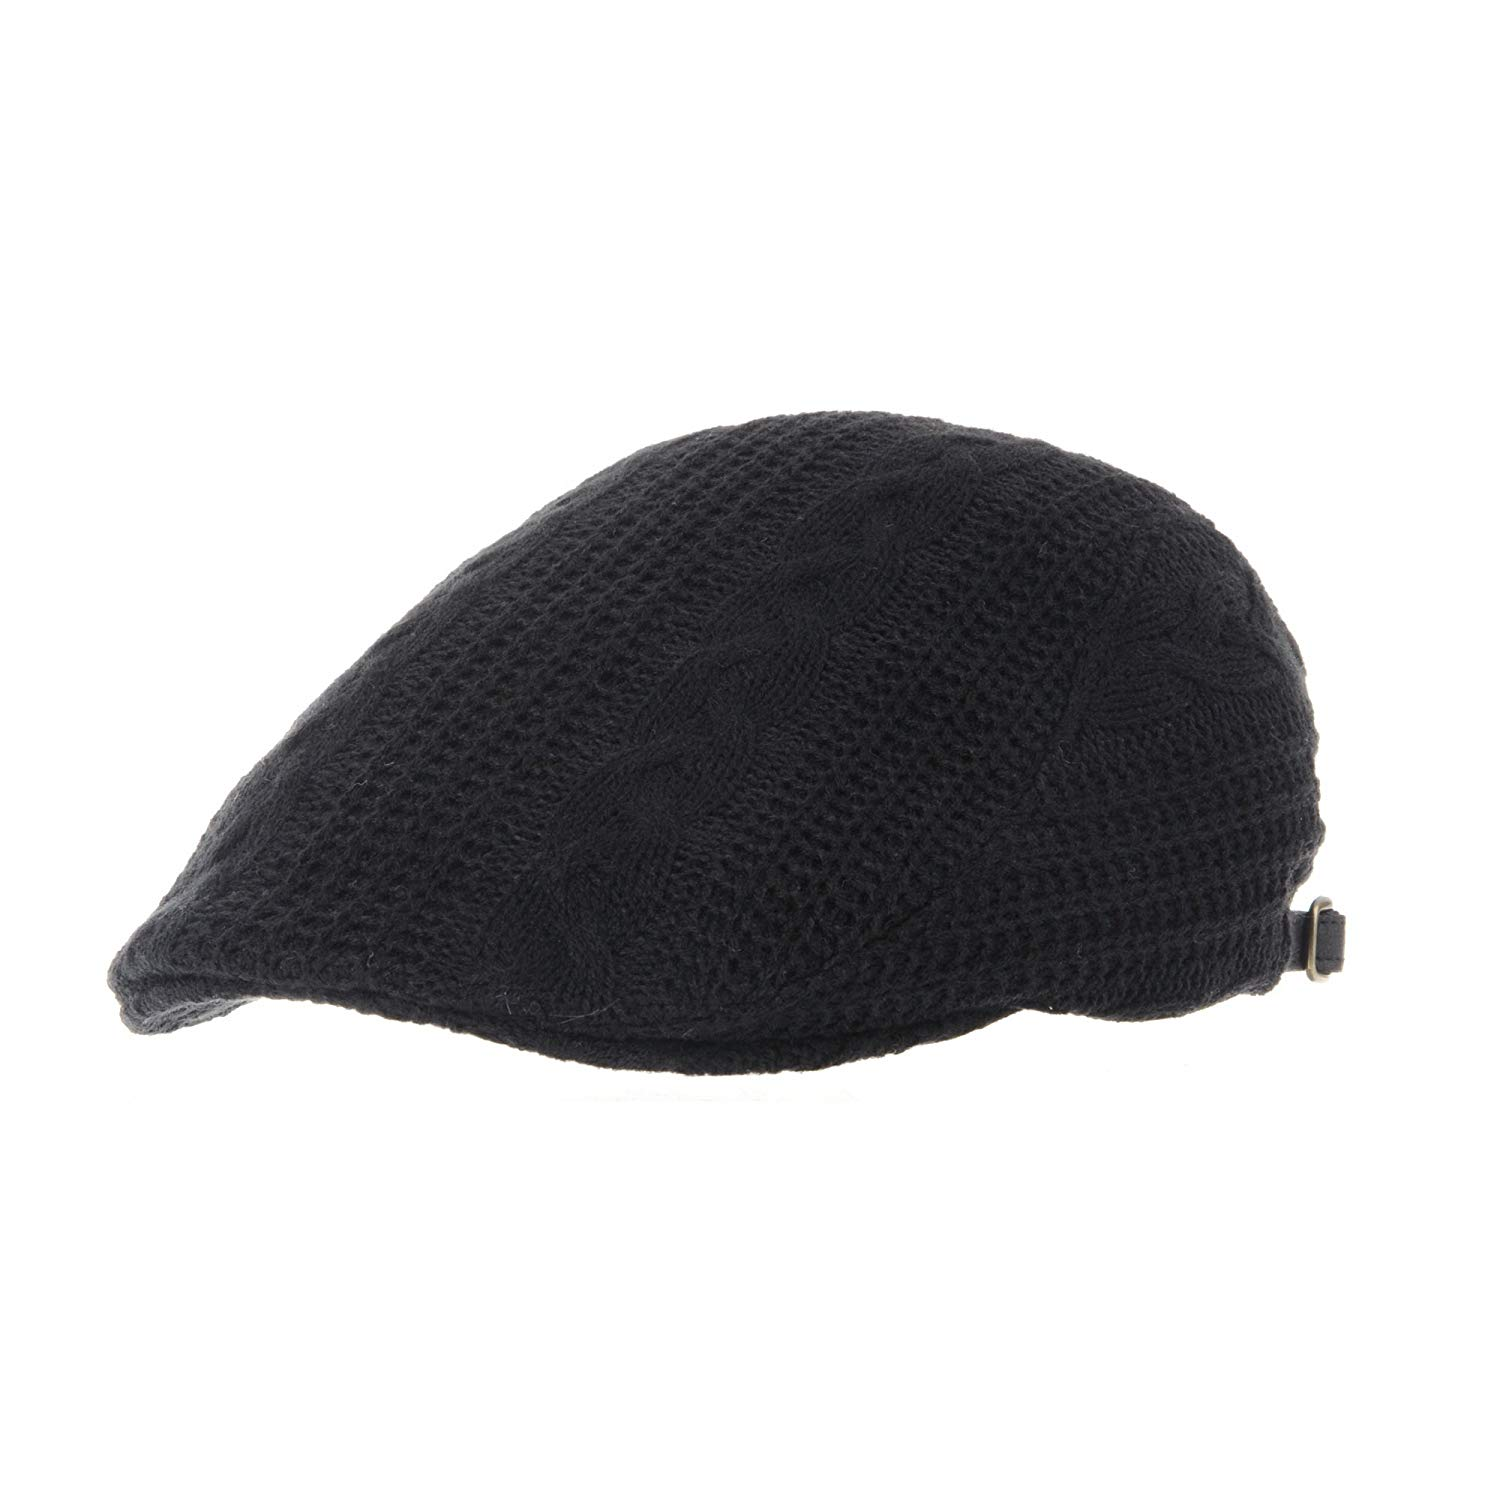 Get Quotations · WITHMOONS Knitted Twisted Cable Pattern Newsboy Hat Flat  Cap LD3157 e0aa449a5a82